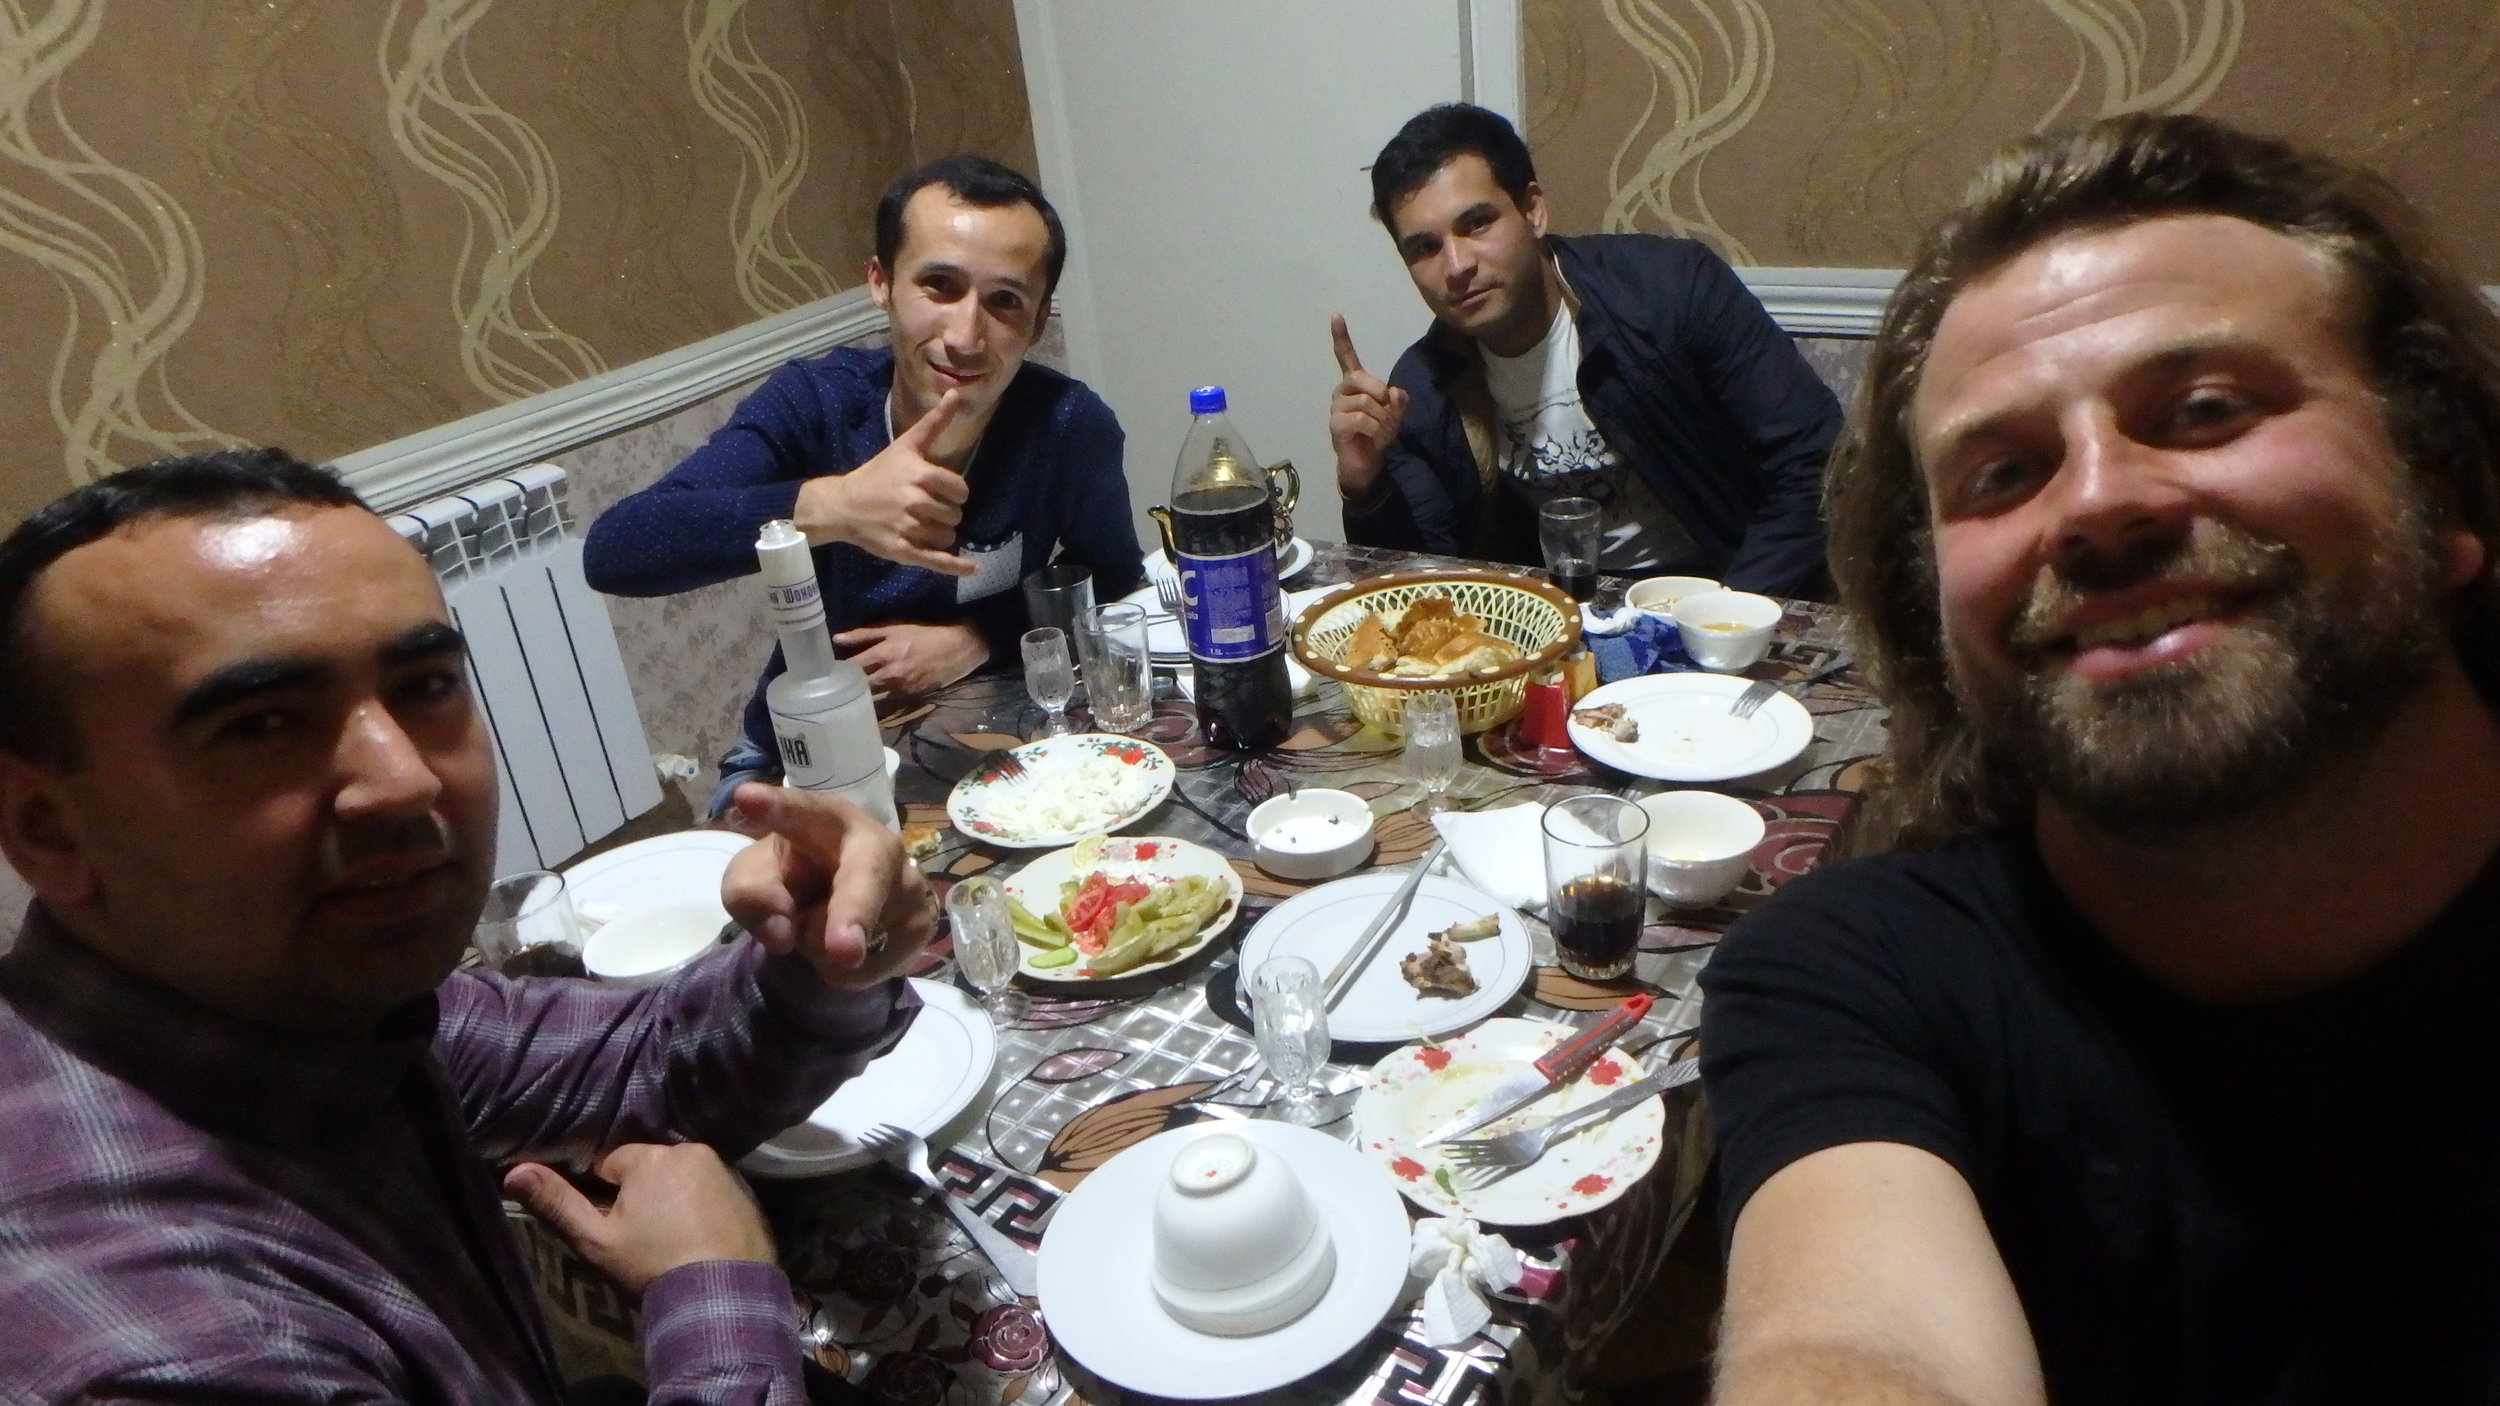 Vodka, shashlyk, and pickles with my Khujand party bros.